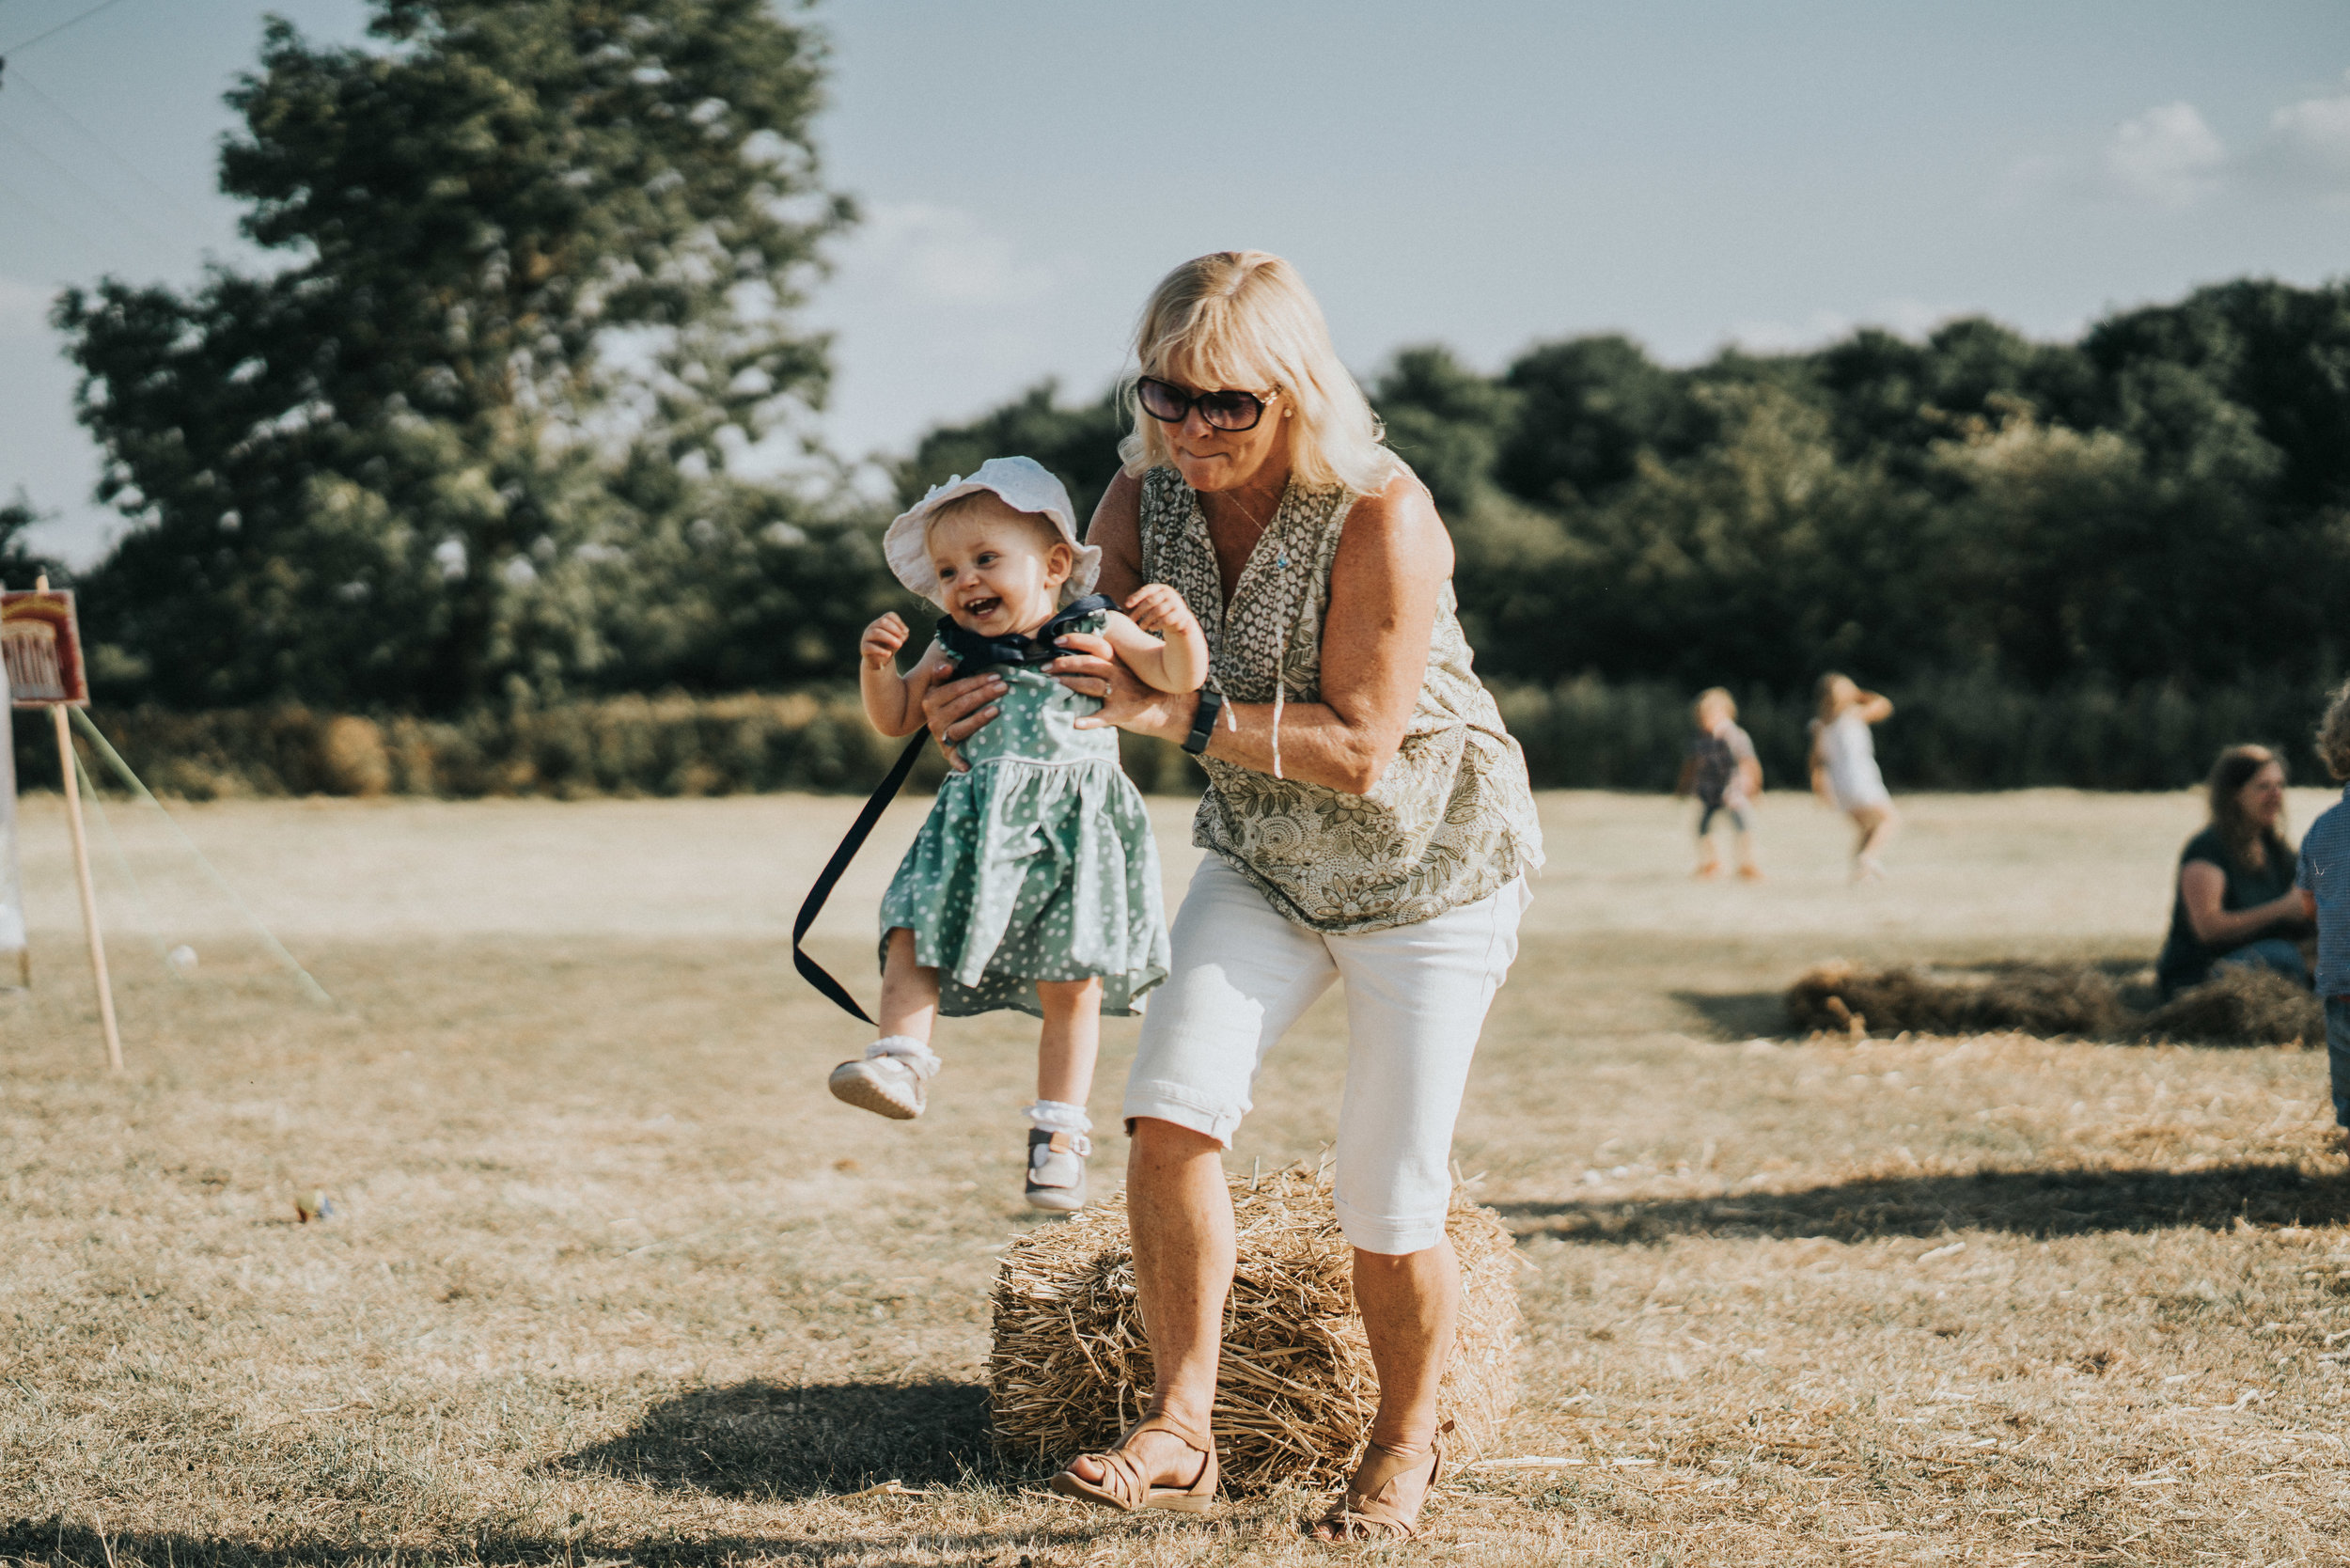 london-kettering-summer-marquee-country-wedding-photography-videography-38